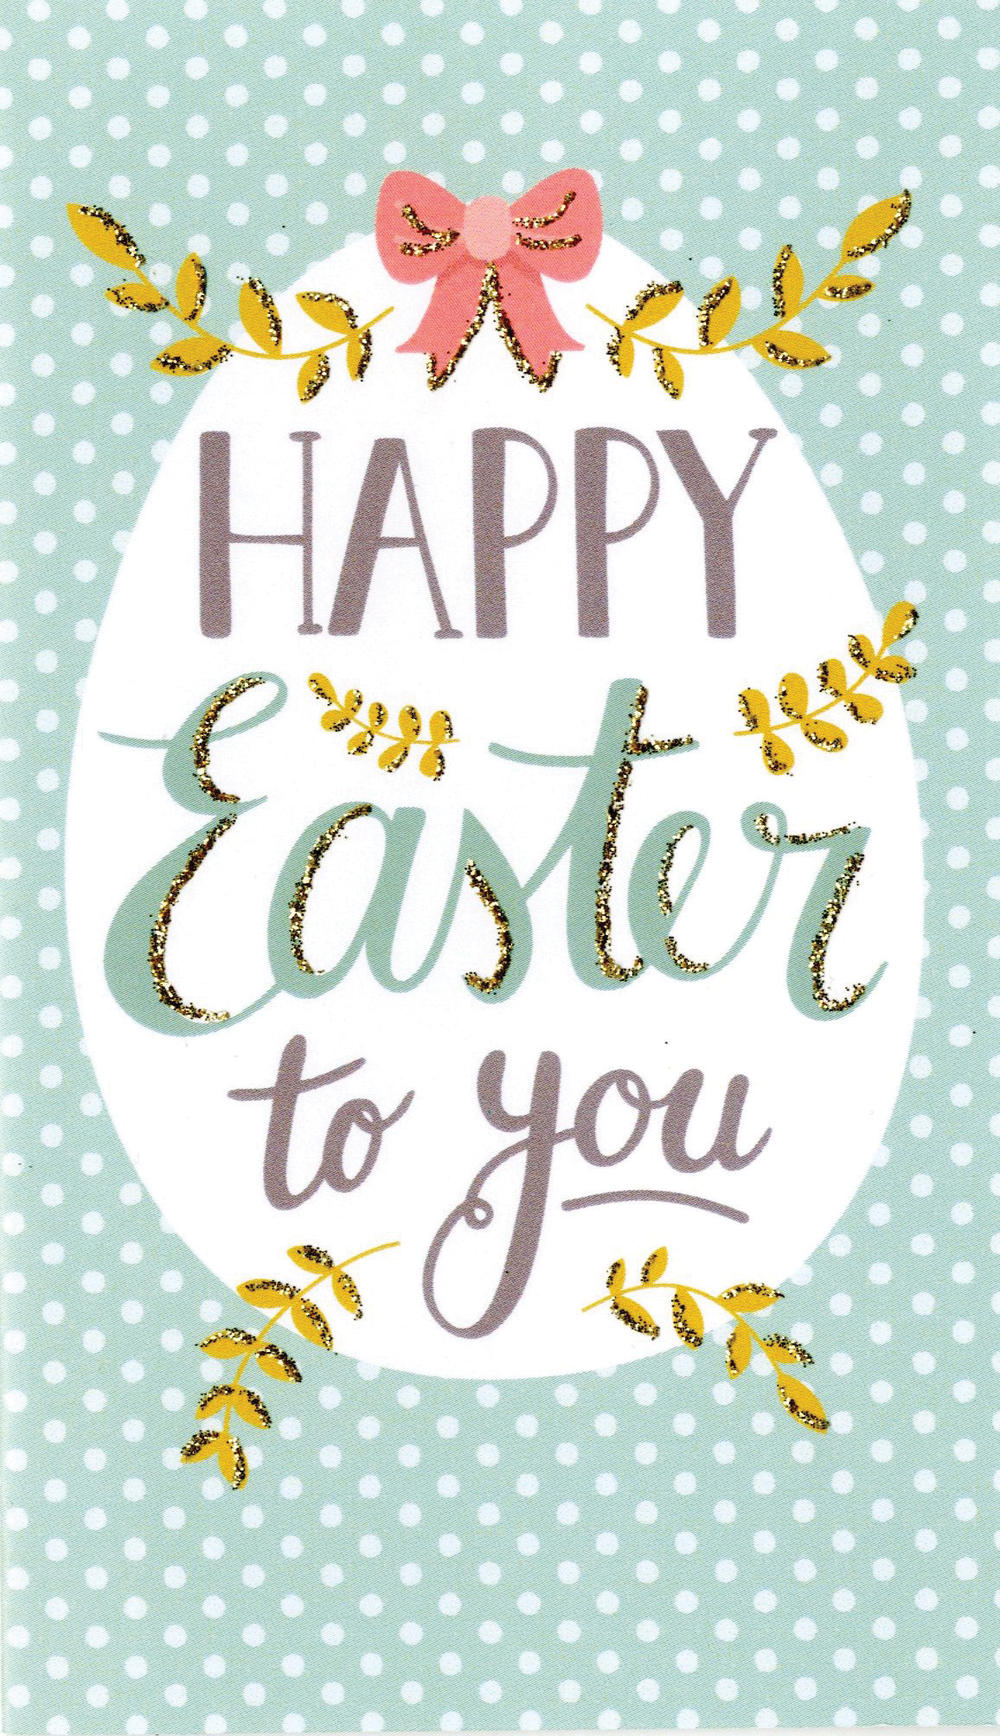 Happy Easter To You Money Wallet Card